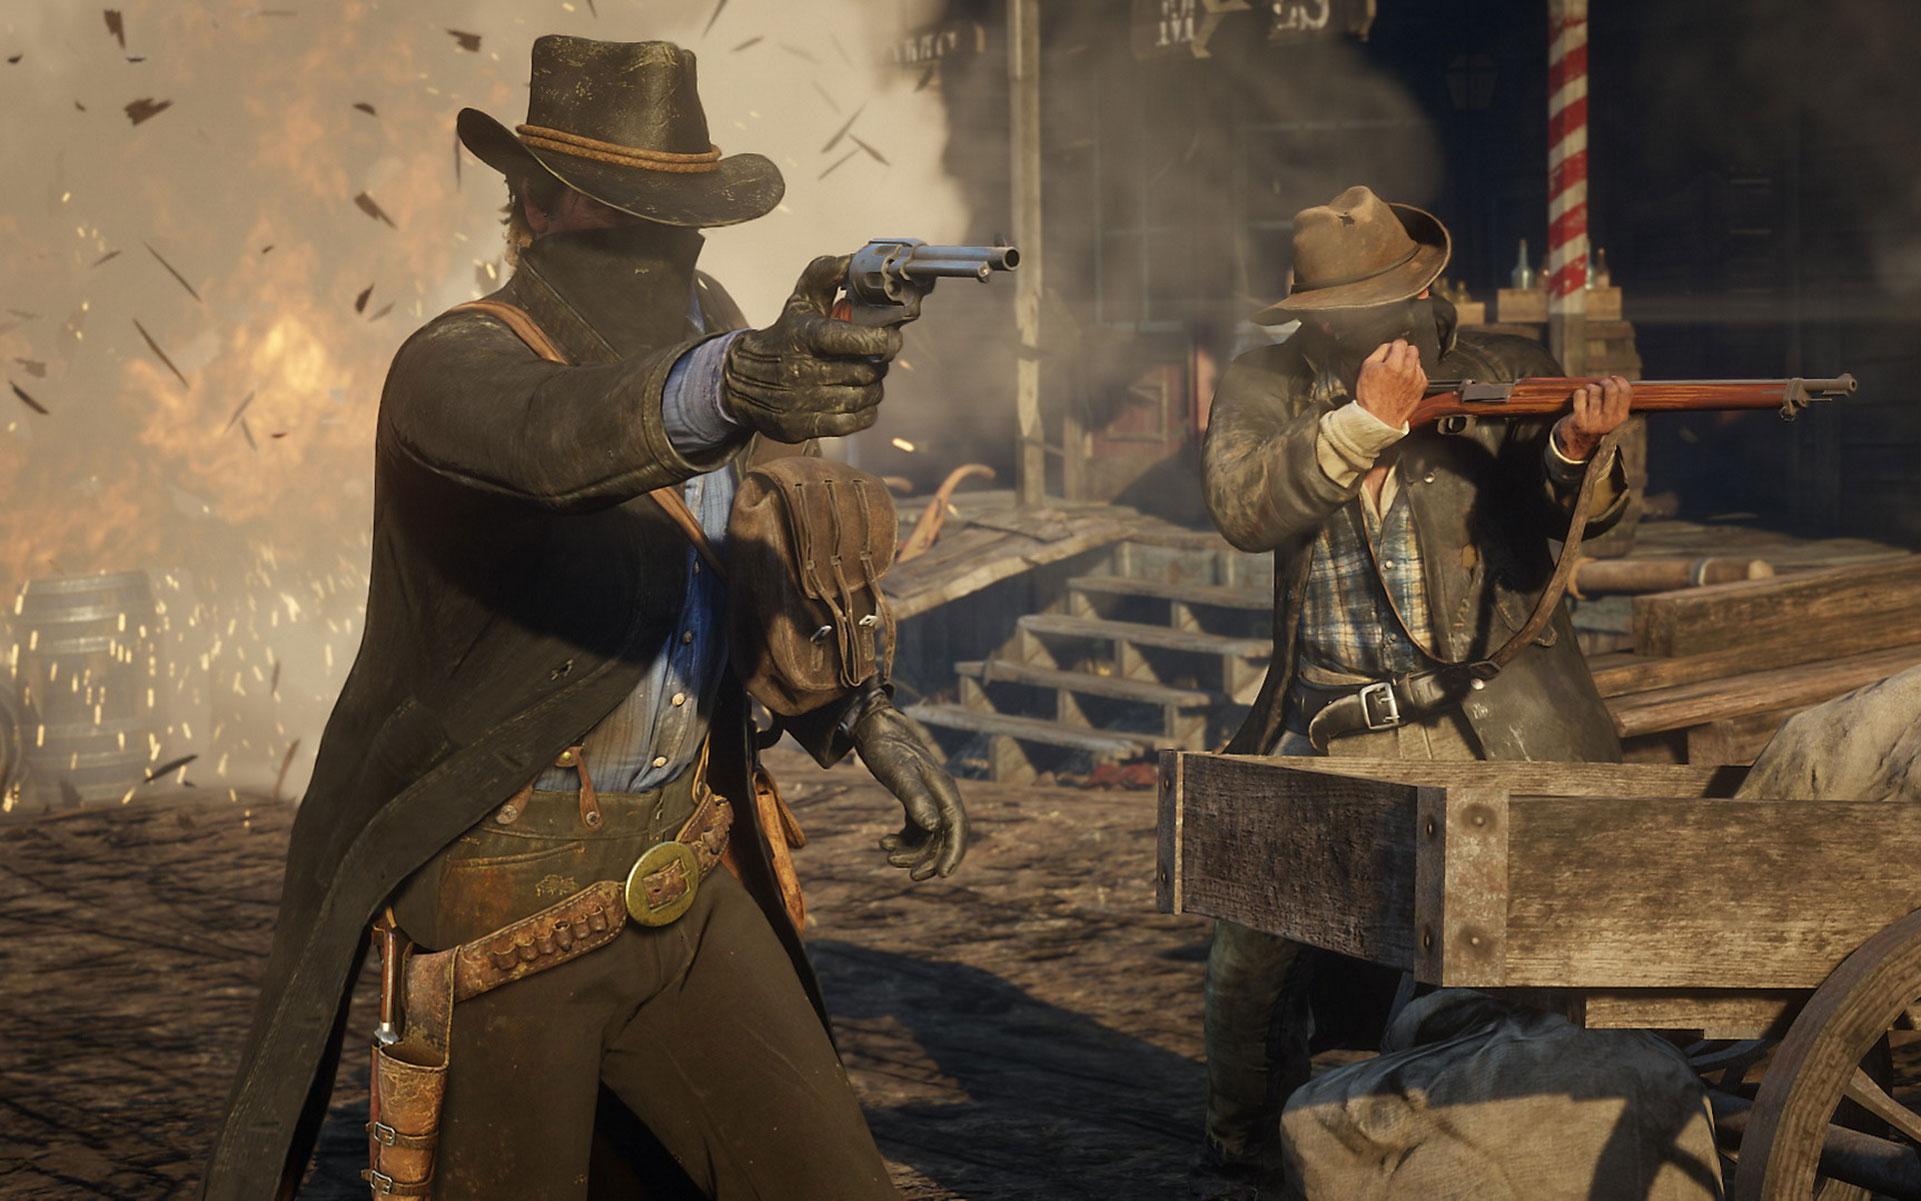 The High Score: 7 Moments in 'Red Dead Redemption 2' That Call for Cannabis thumbnail